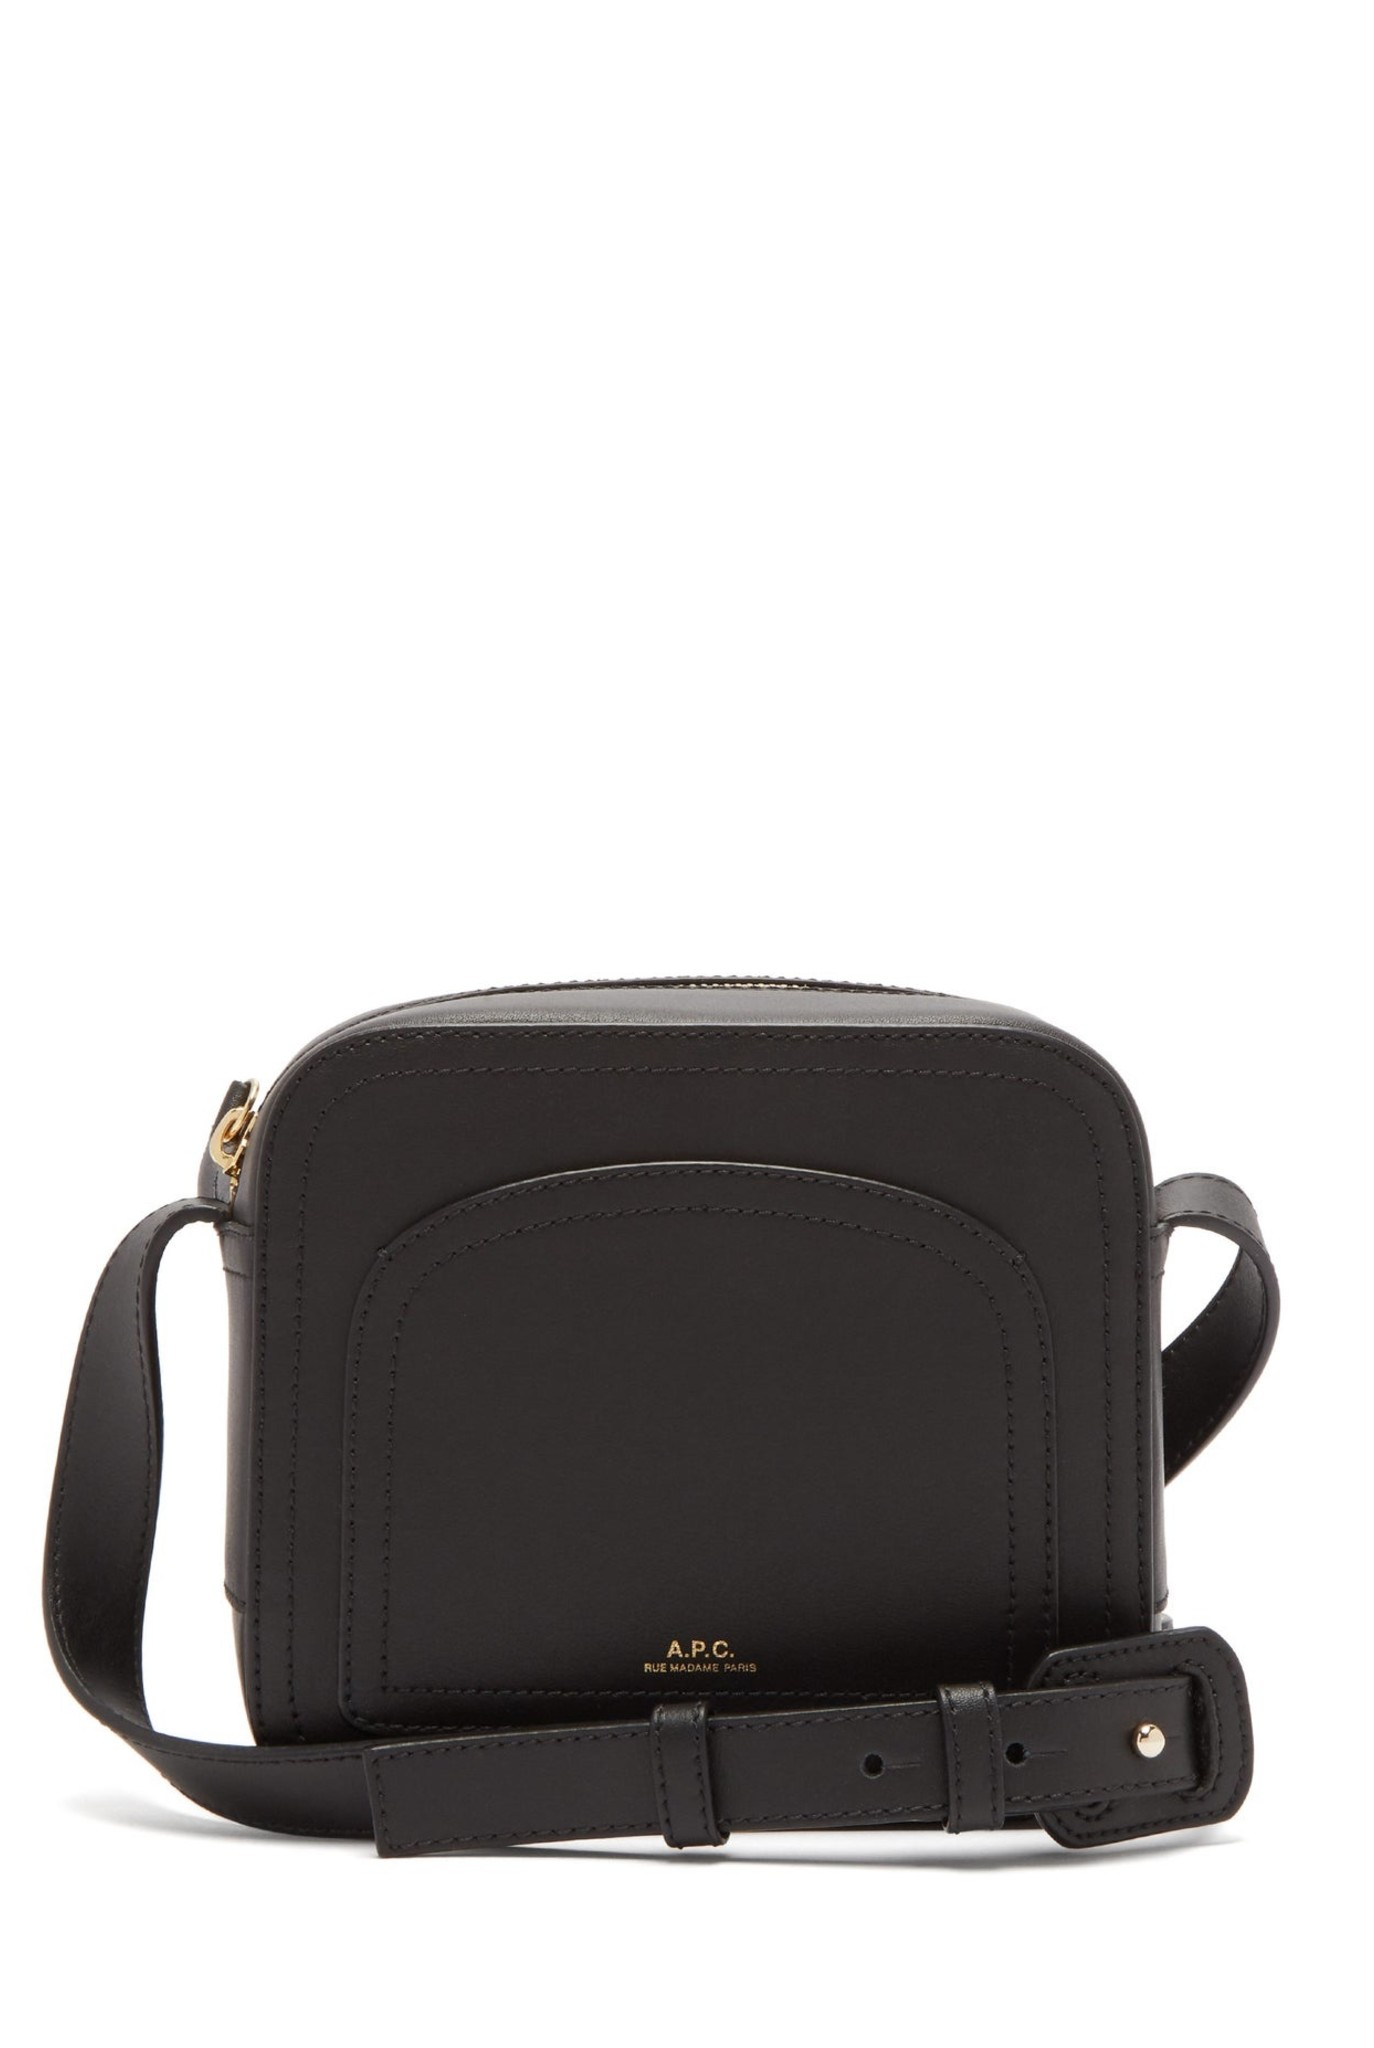 Louisette bag black